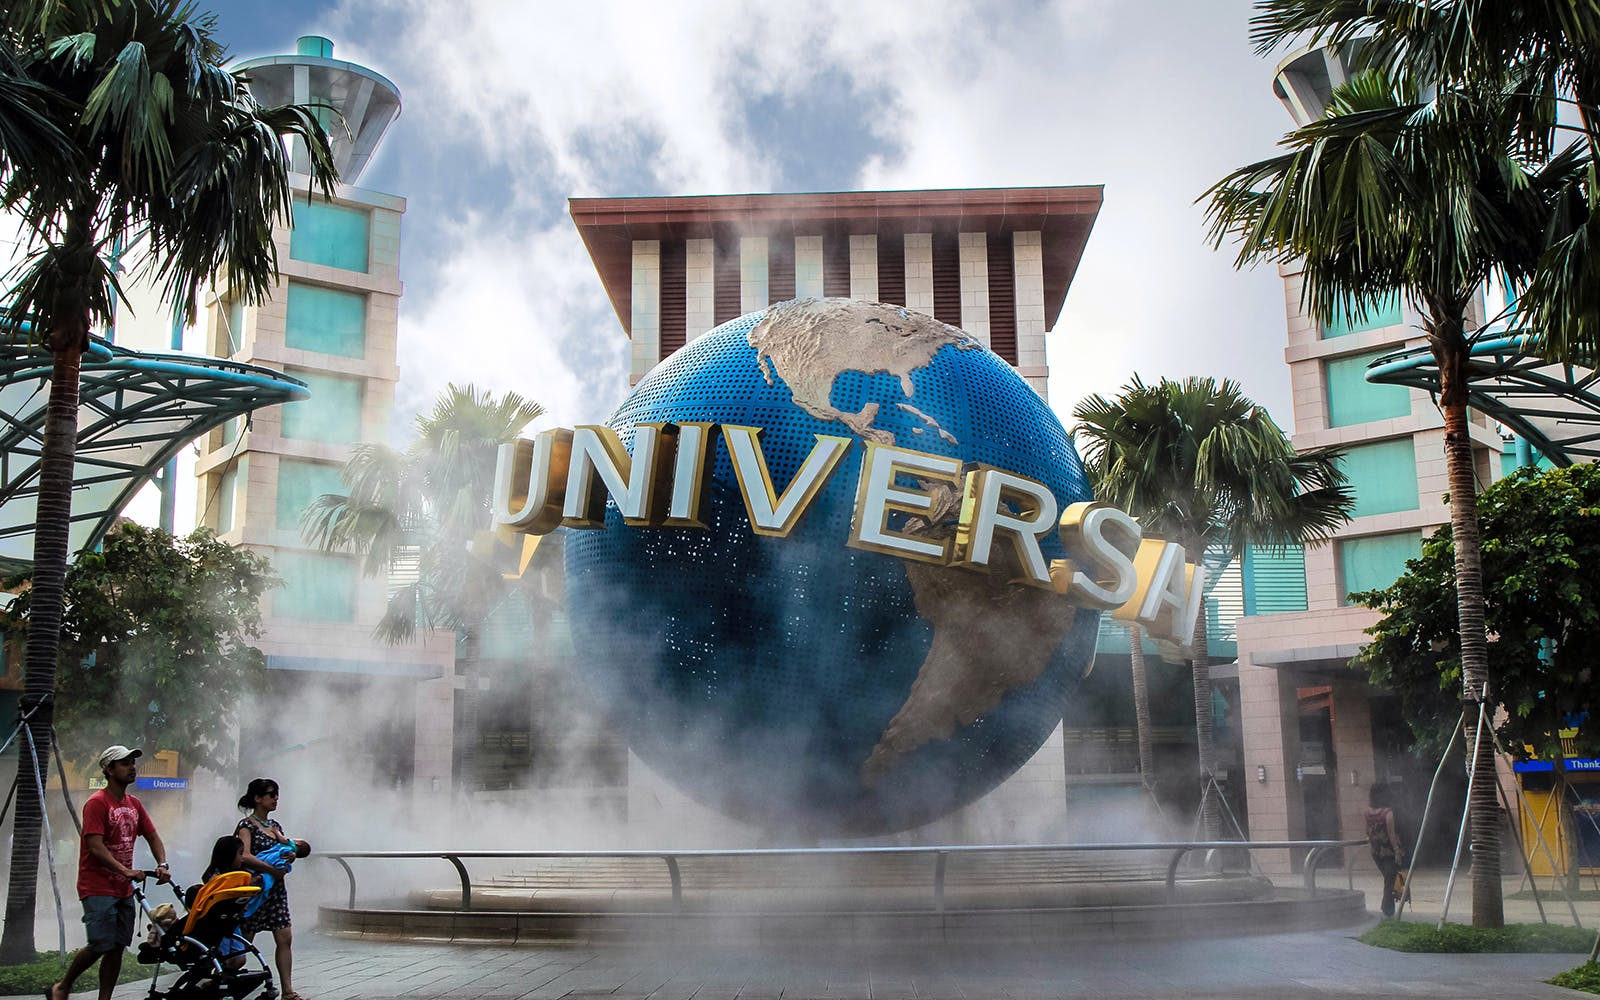 ultimate combo: universal studios + adventure cove water park + s.e.a aquarium-1